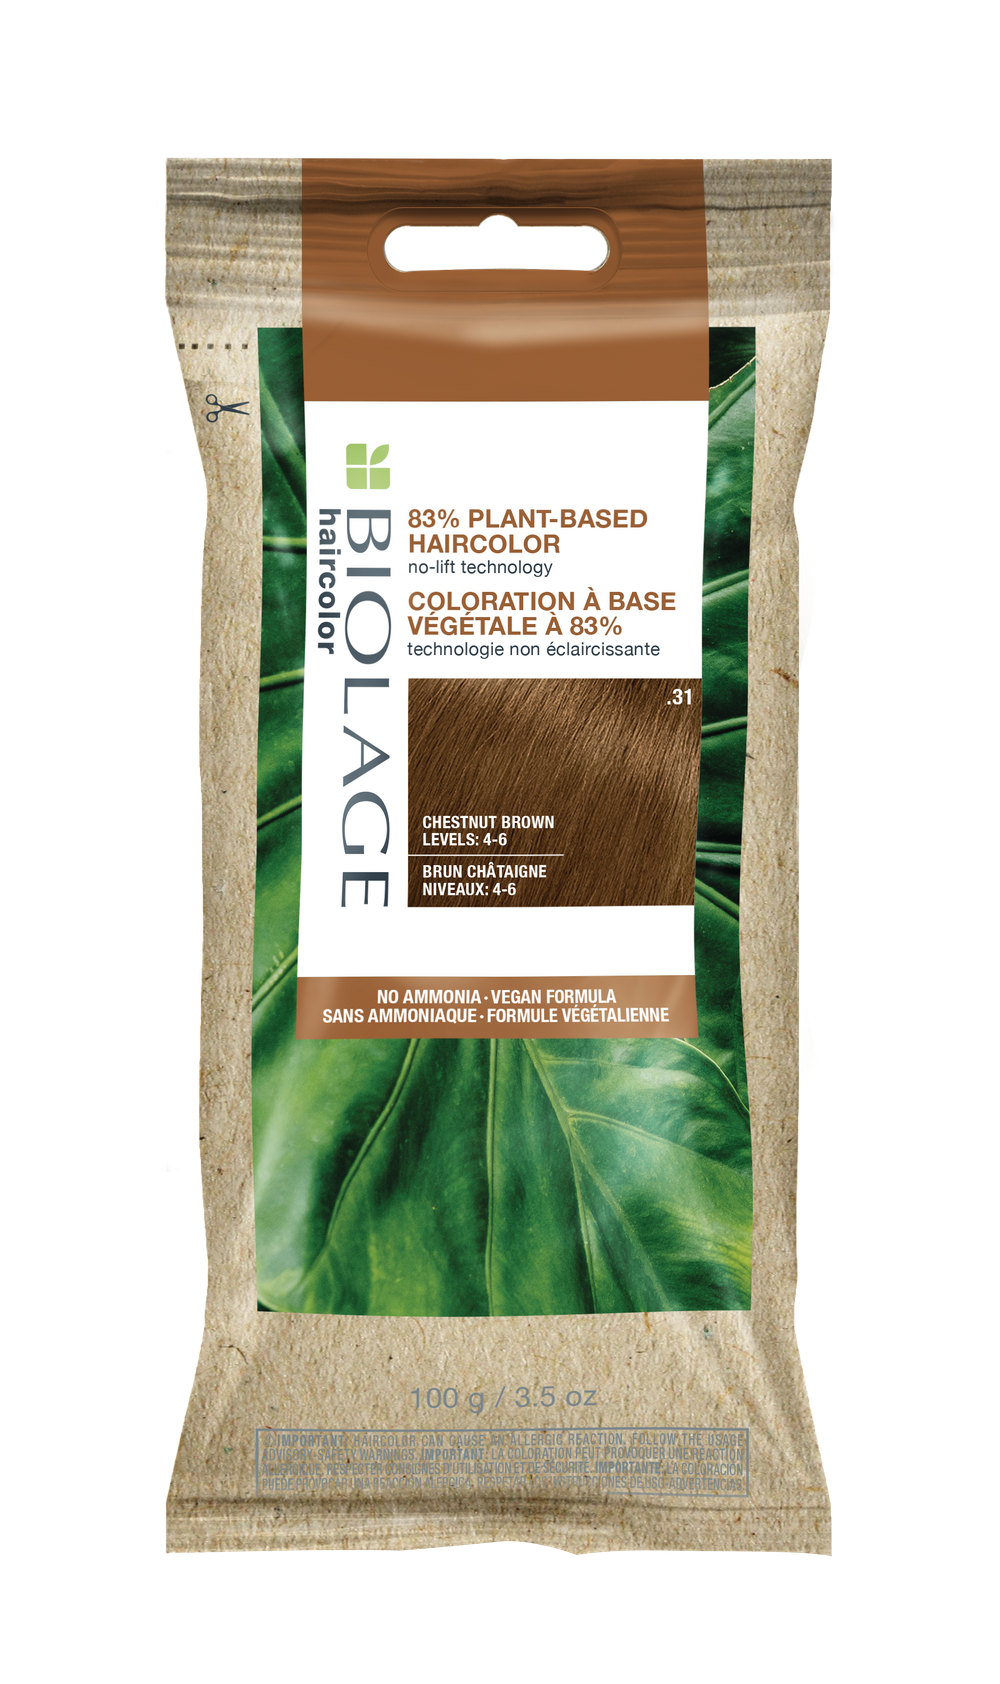 Biolage Launches Plant Based Hair Color Range News